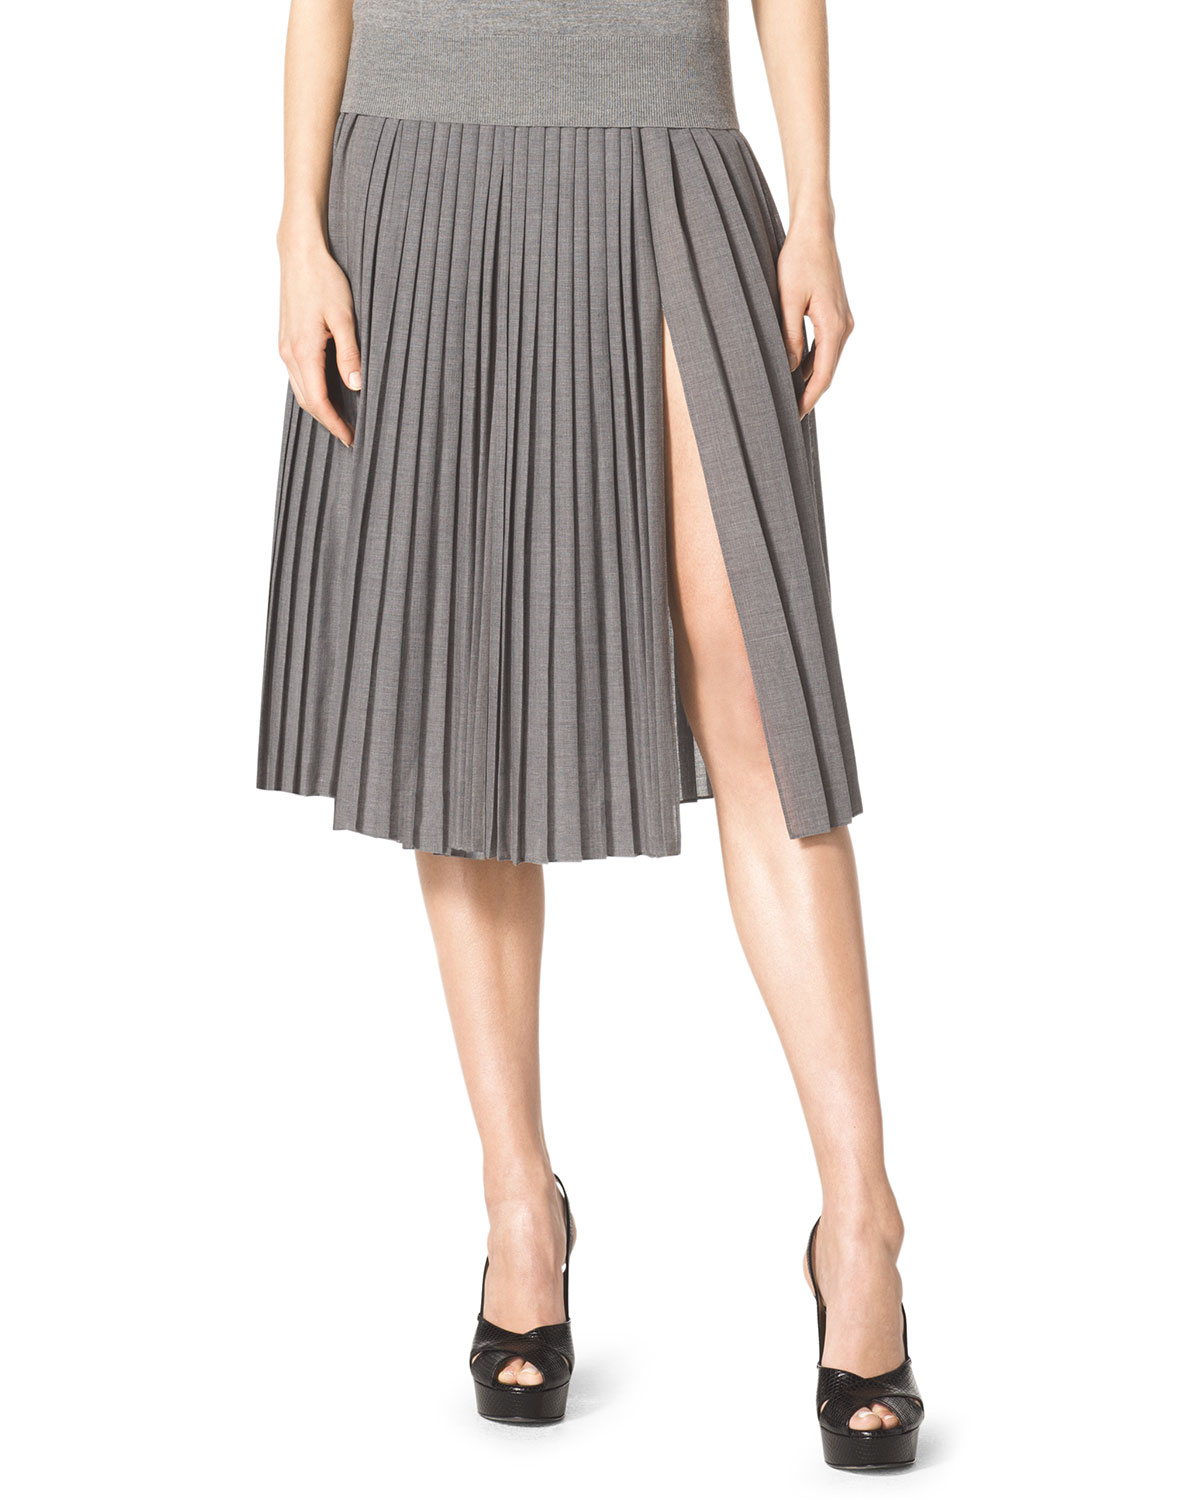 327df9eeb5 Michael Kors Pleated Slit-front Wool Skirt in Gray - Lyst